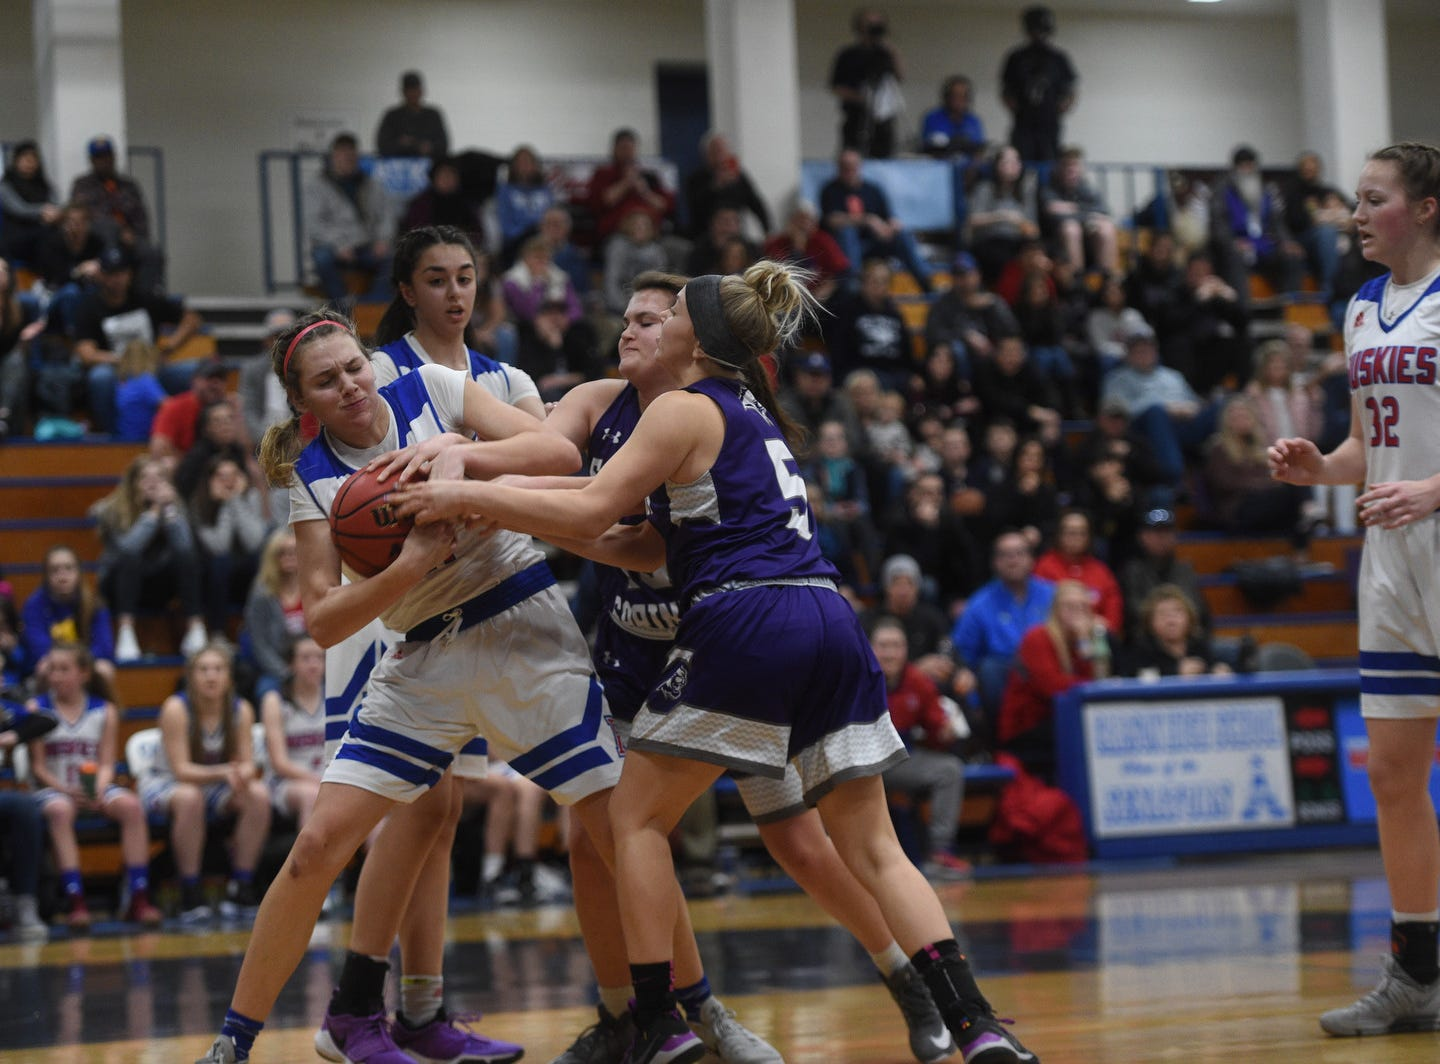 Spanish Springs takes on Reno during the girls Northern Region Basketball Championship game in Carson City on Feb. 23, 2019.